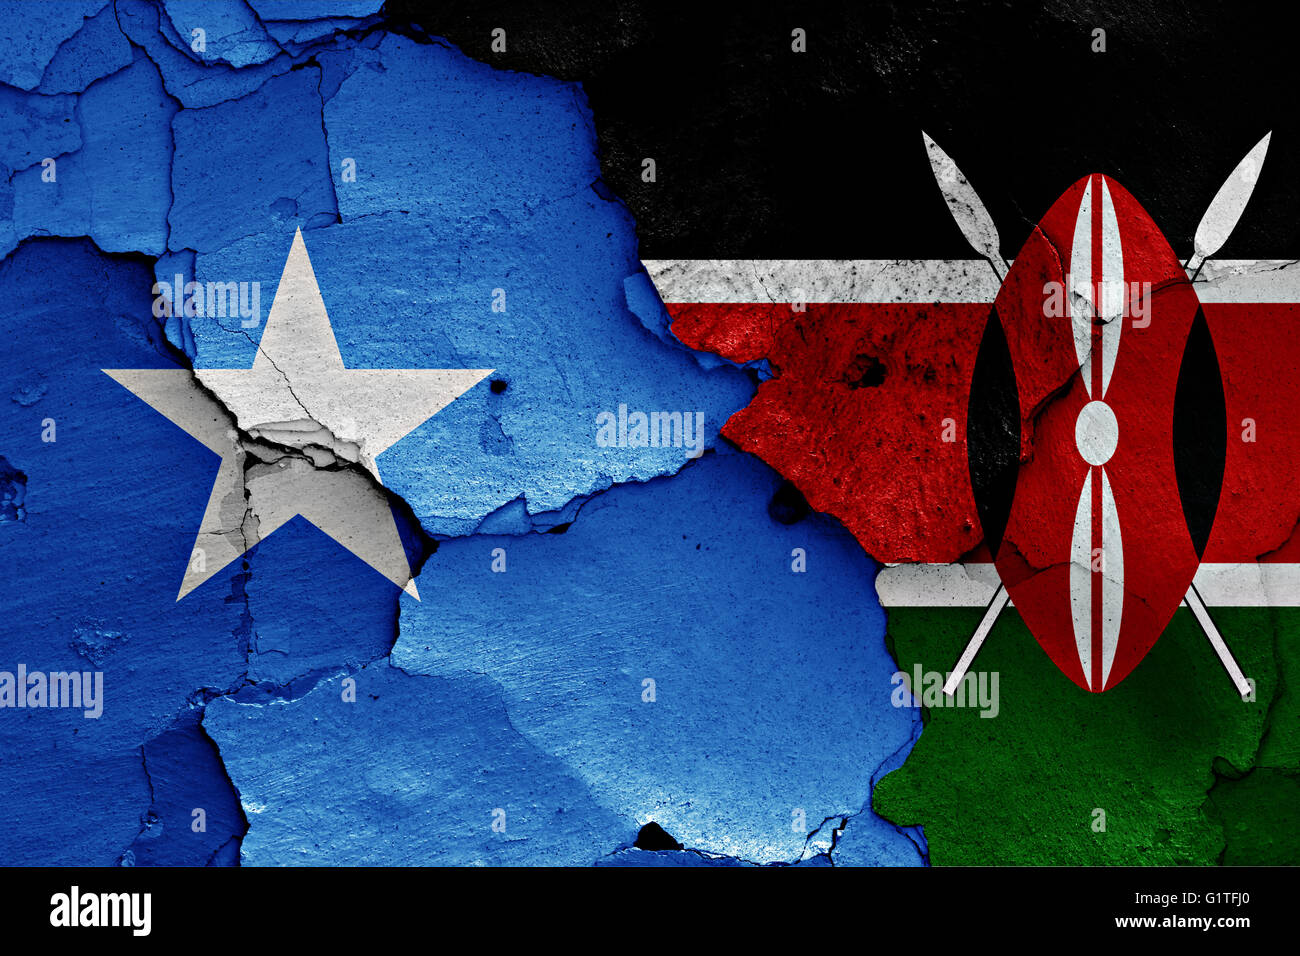 flags of Somalia and Kenya painted on cracked wall - Stock Image